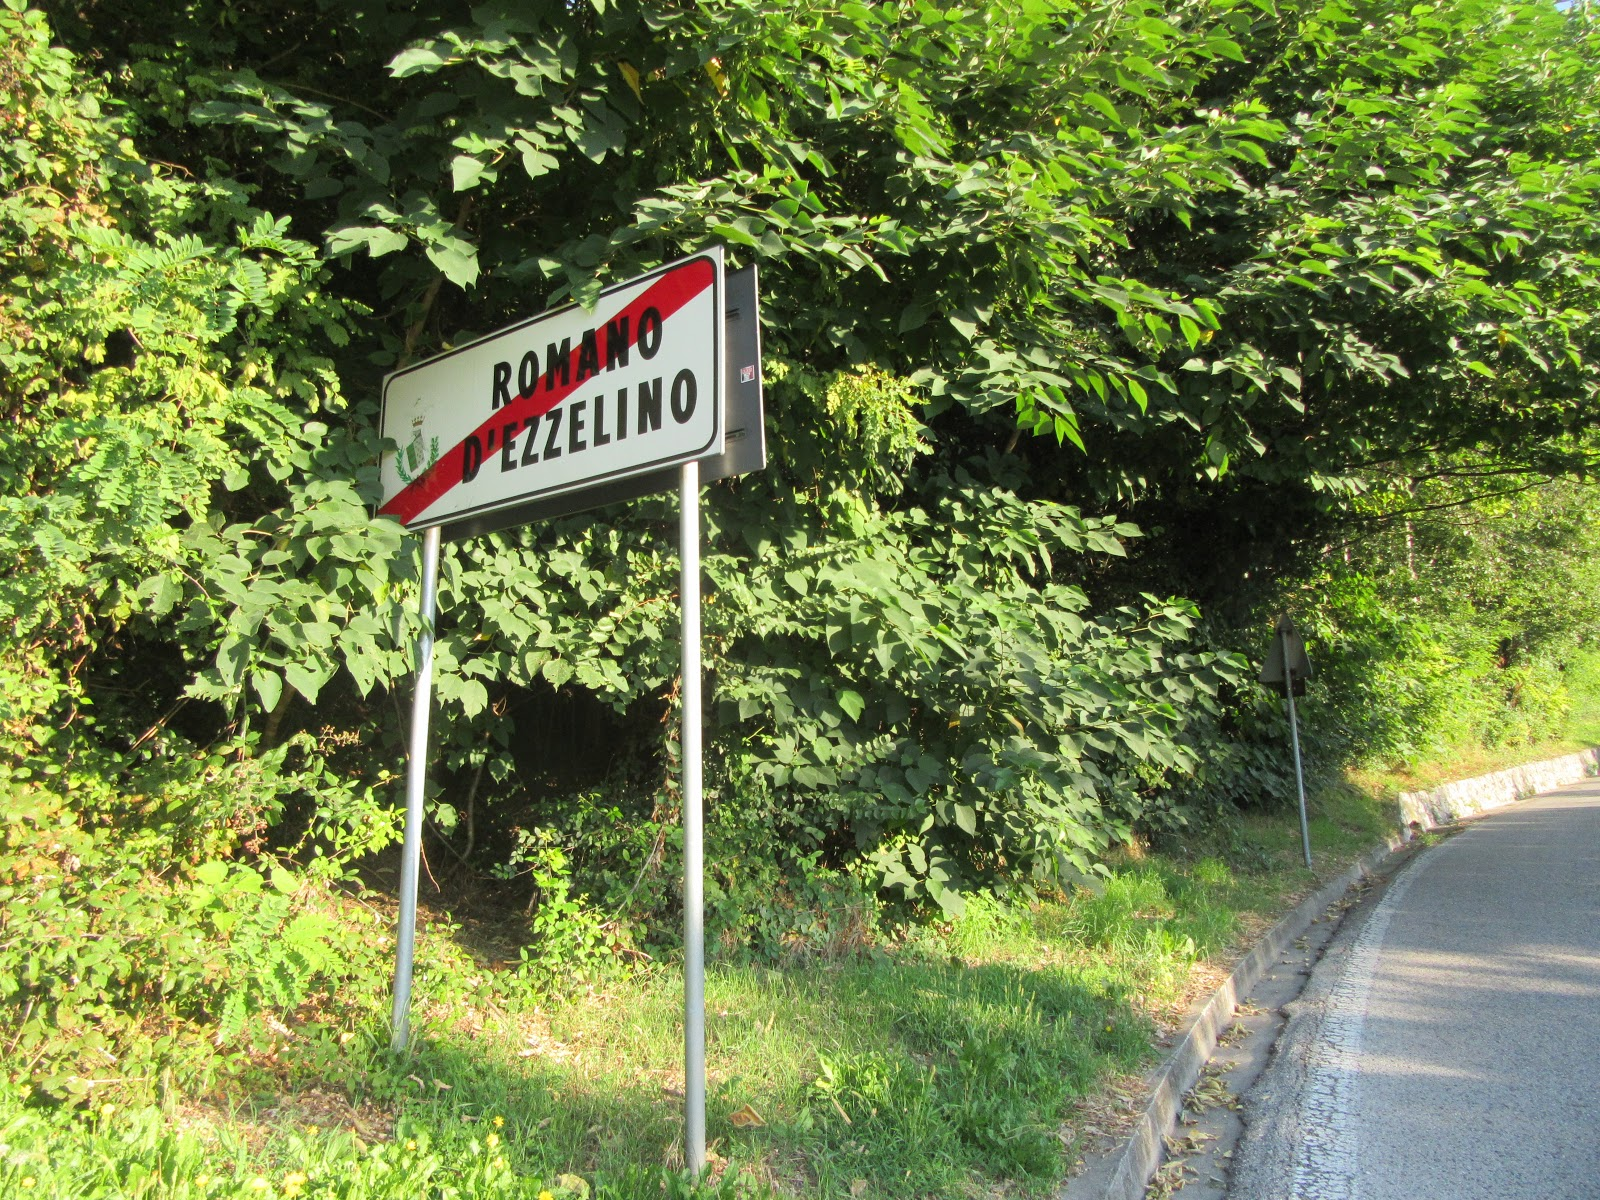 Bike climb of Monte Grappa from Romano d'Ezzilino - leaving Romano d'Ezzilino sign.